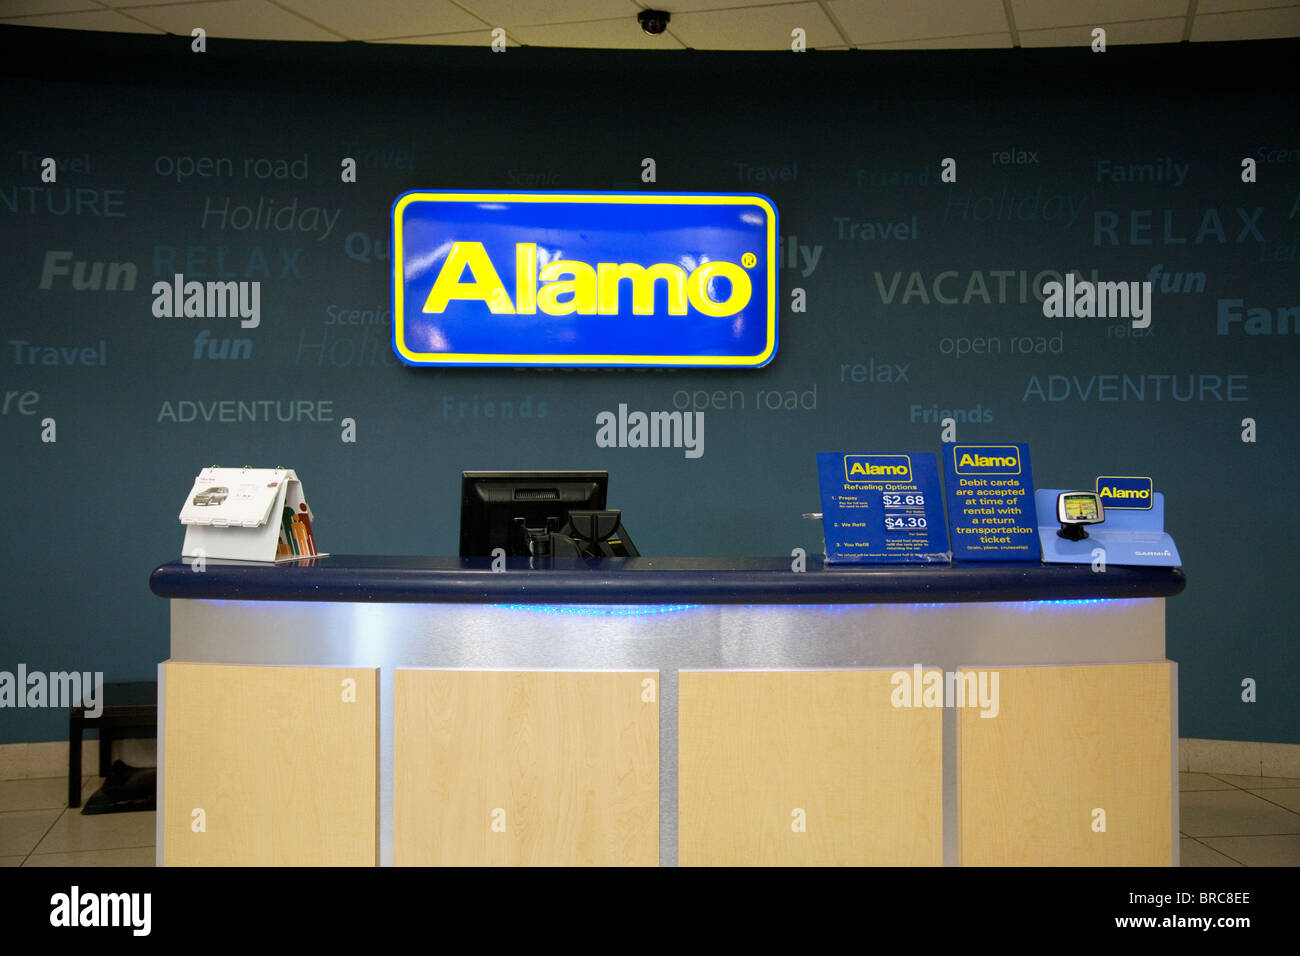 Discount Car Rental  Alamo Avis Budget Enterprise